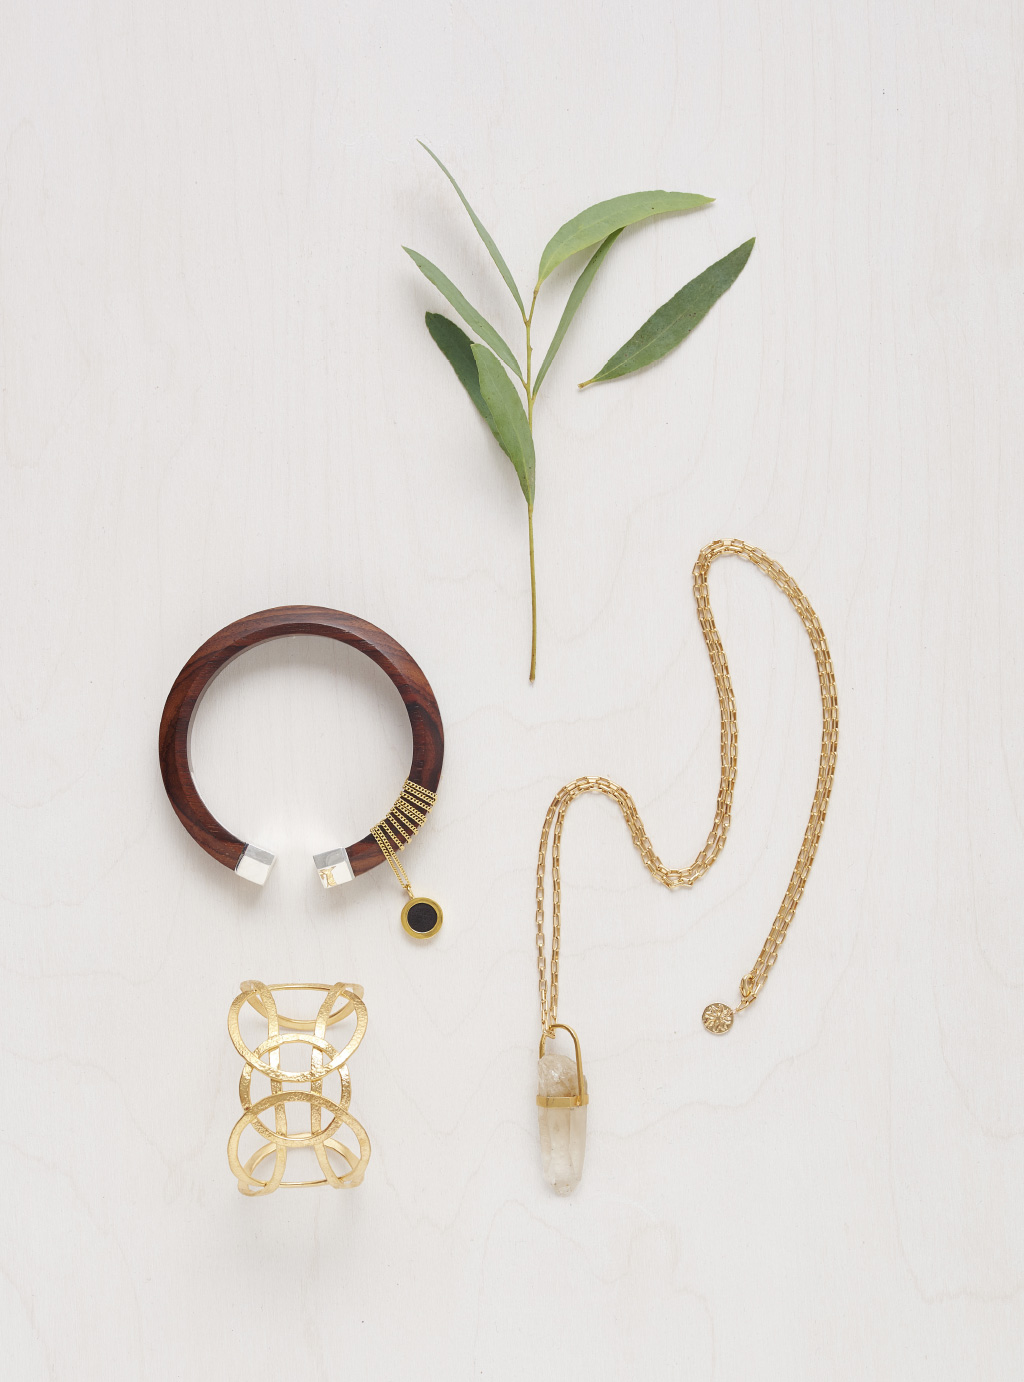 a golden necklace, a golden and a wooden bracelet and a branch